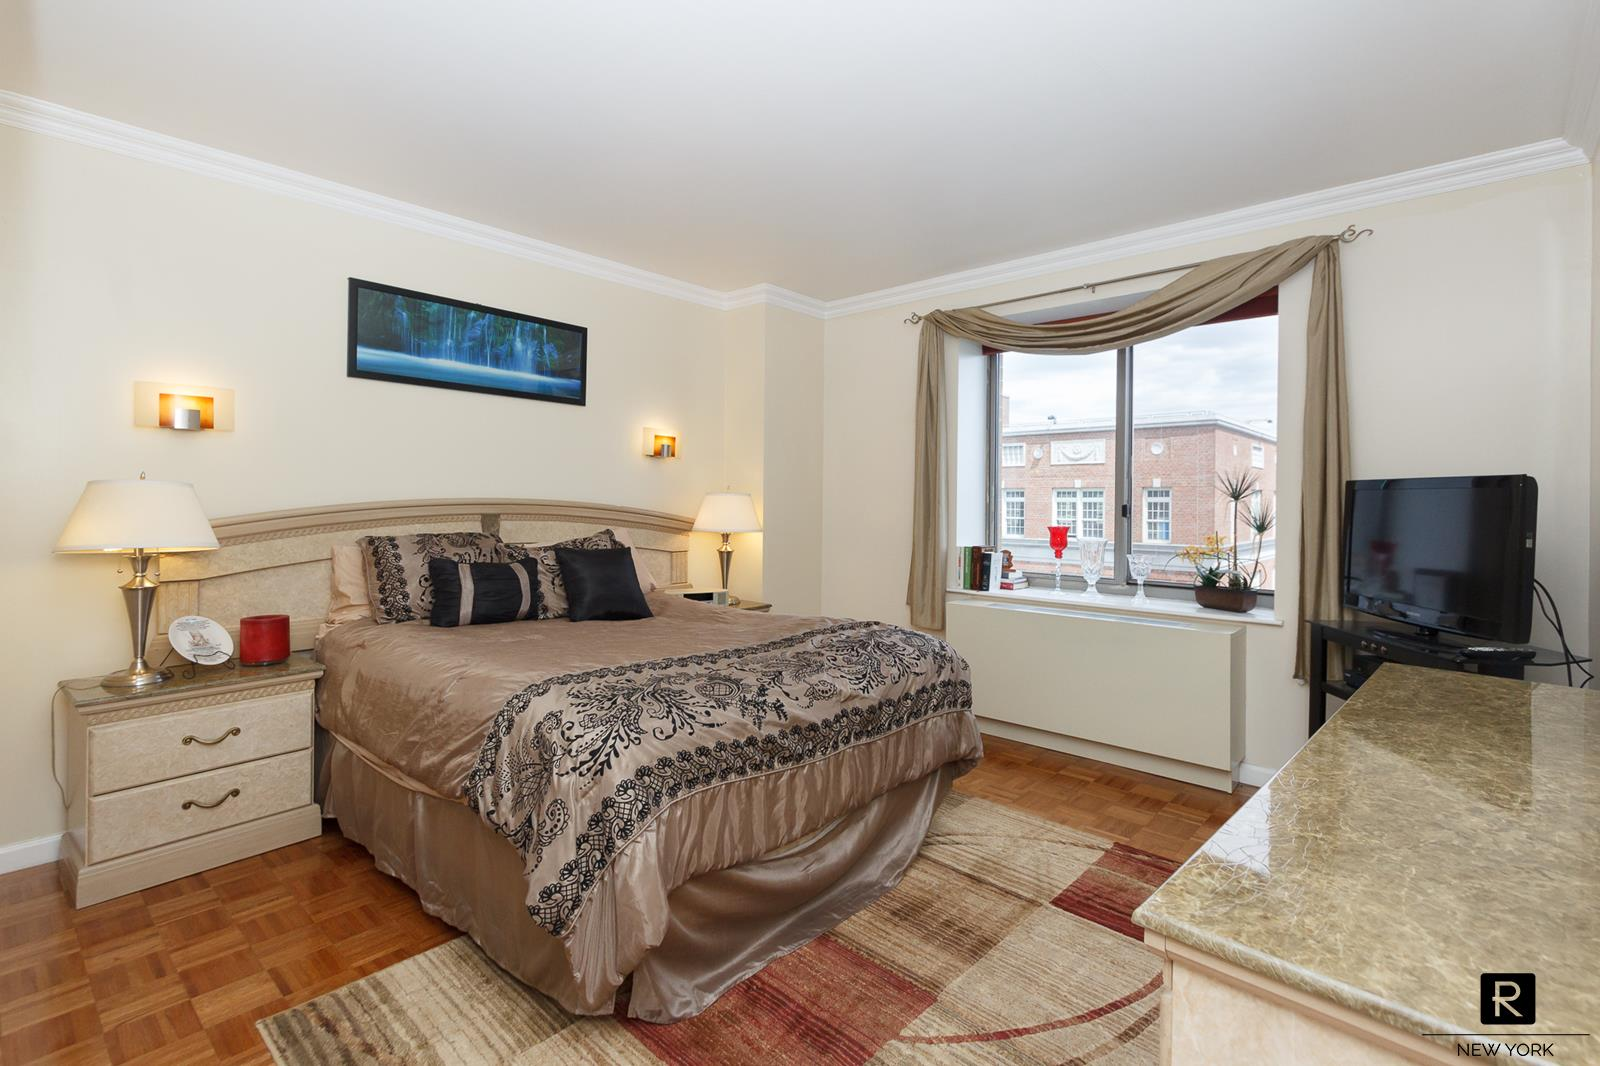 Apartment for sale at 300 West 135th Street, Apt 8-C